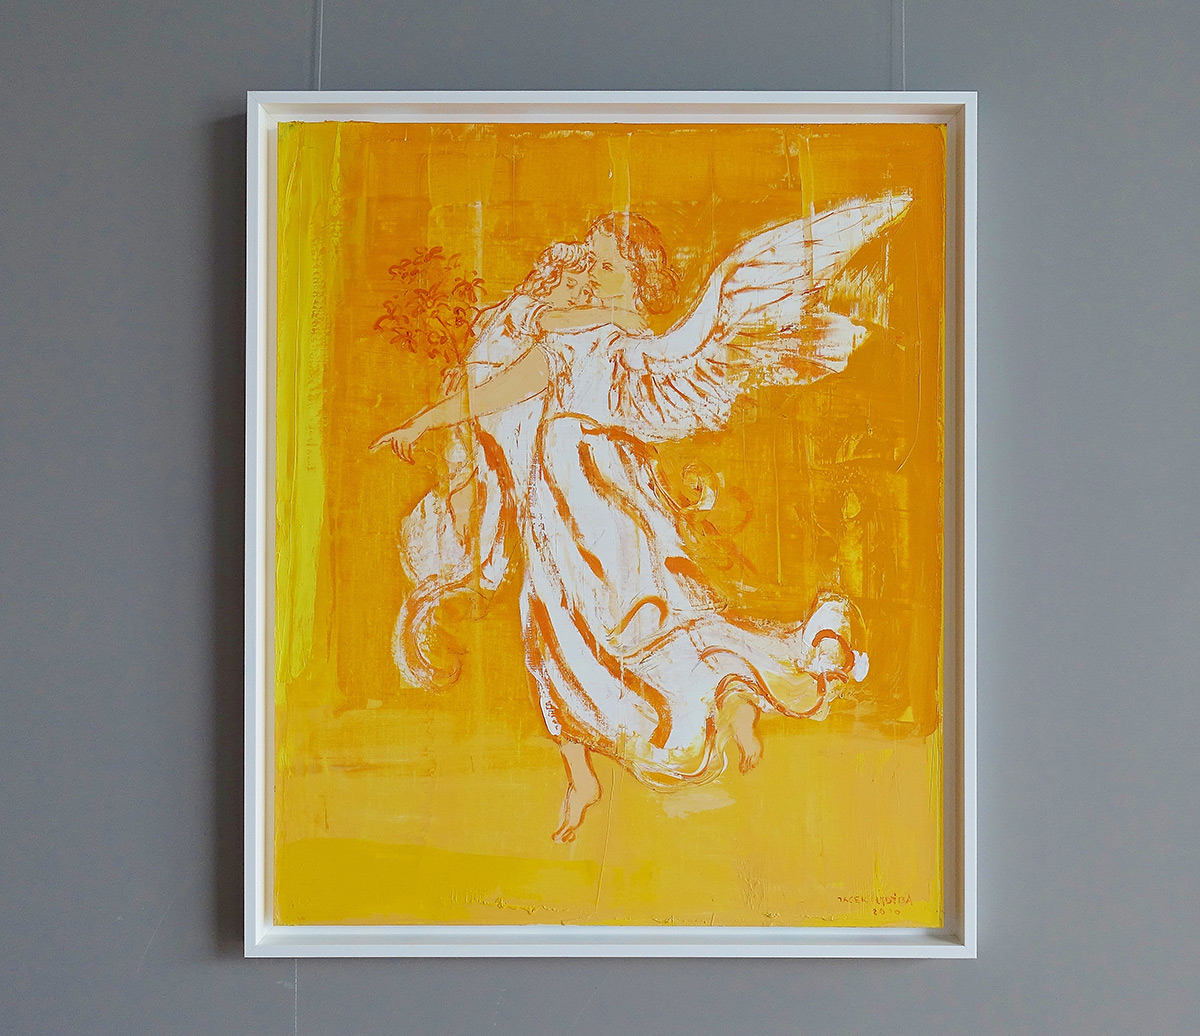 Jacek Łydżba : Guardian angel with yellow